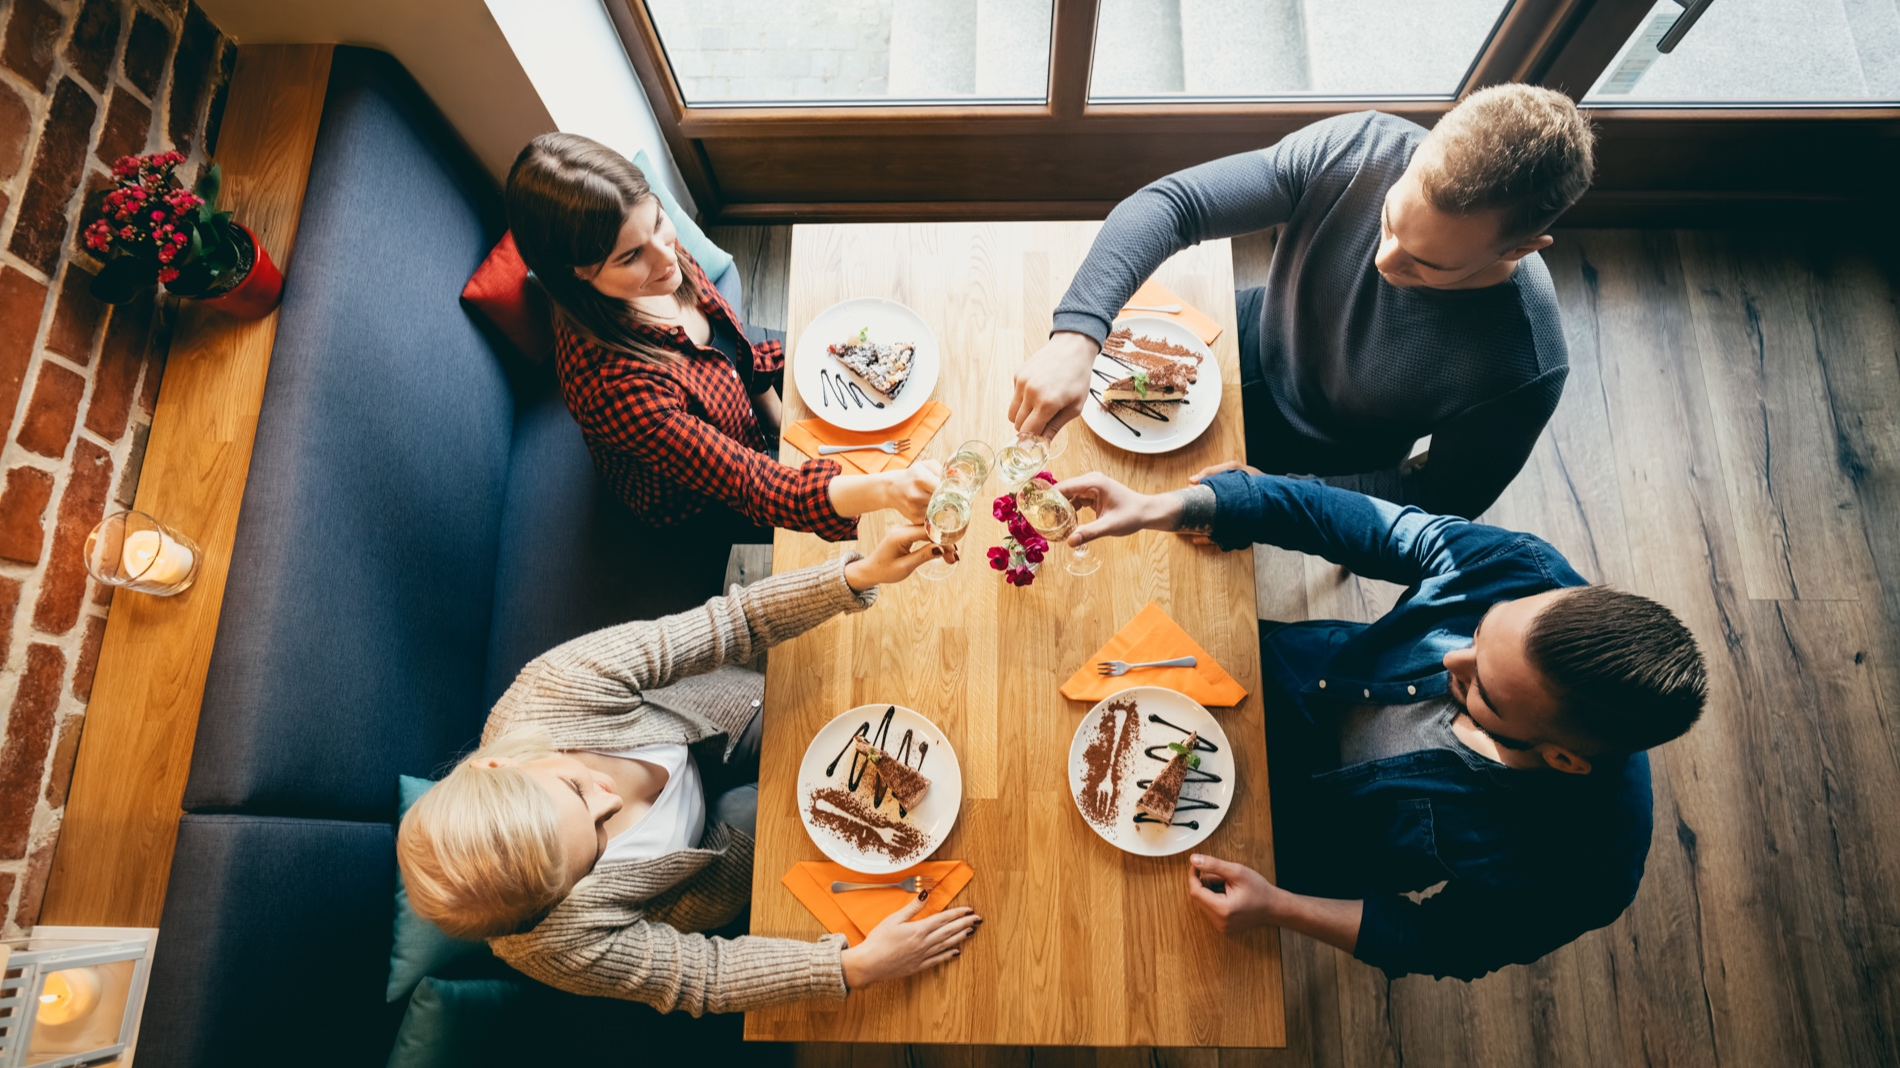 four-friends-toasting-in-a-restaurant-top-view-PLVMAMM.jpg